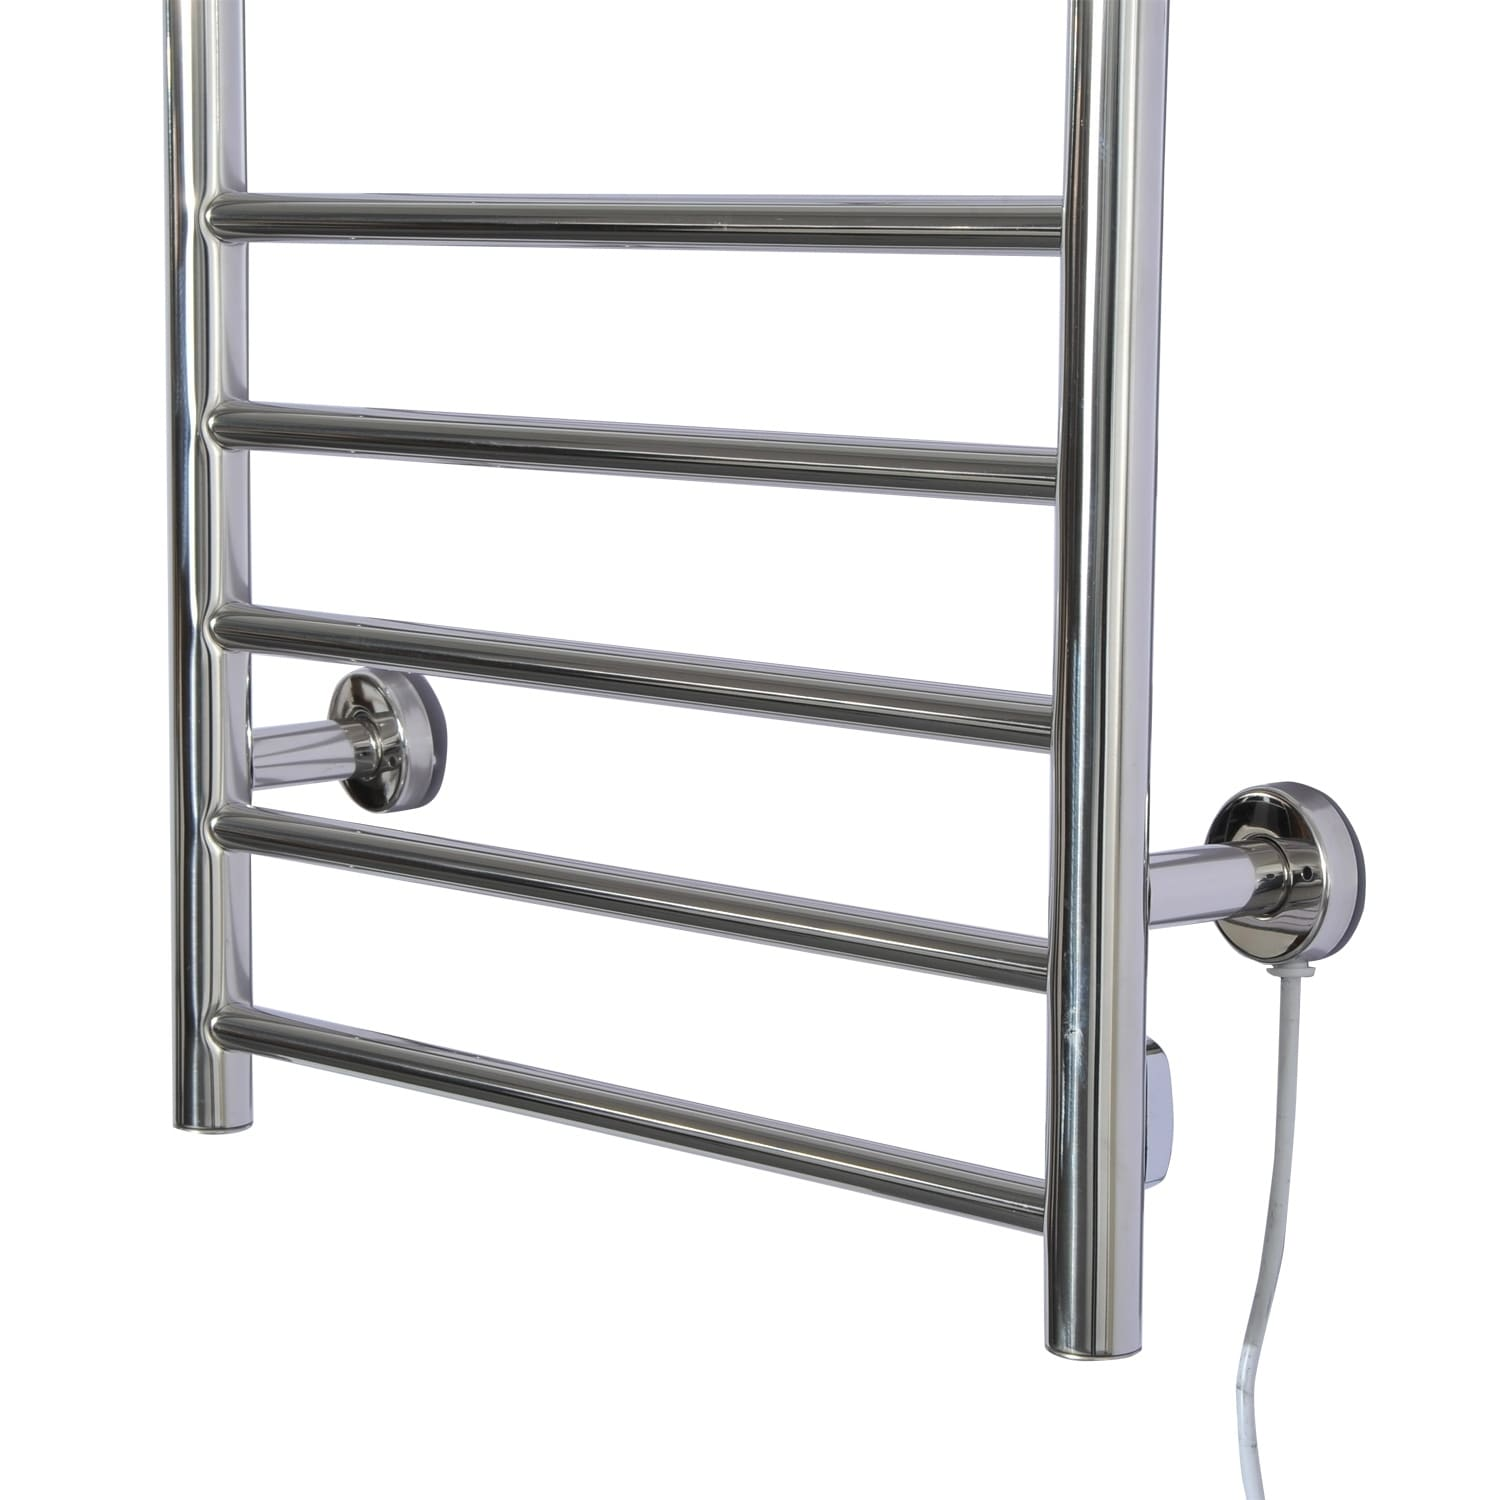 Homcom 10 Bar Stainless Steel Wall Mounted Electric Heated Towel Warmer Rack Free Shipping Today 18074000